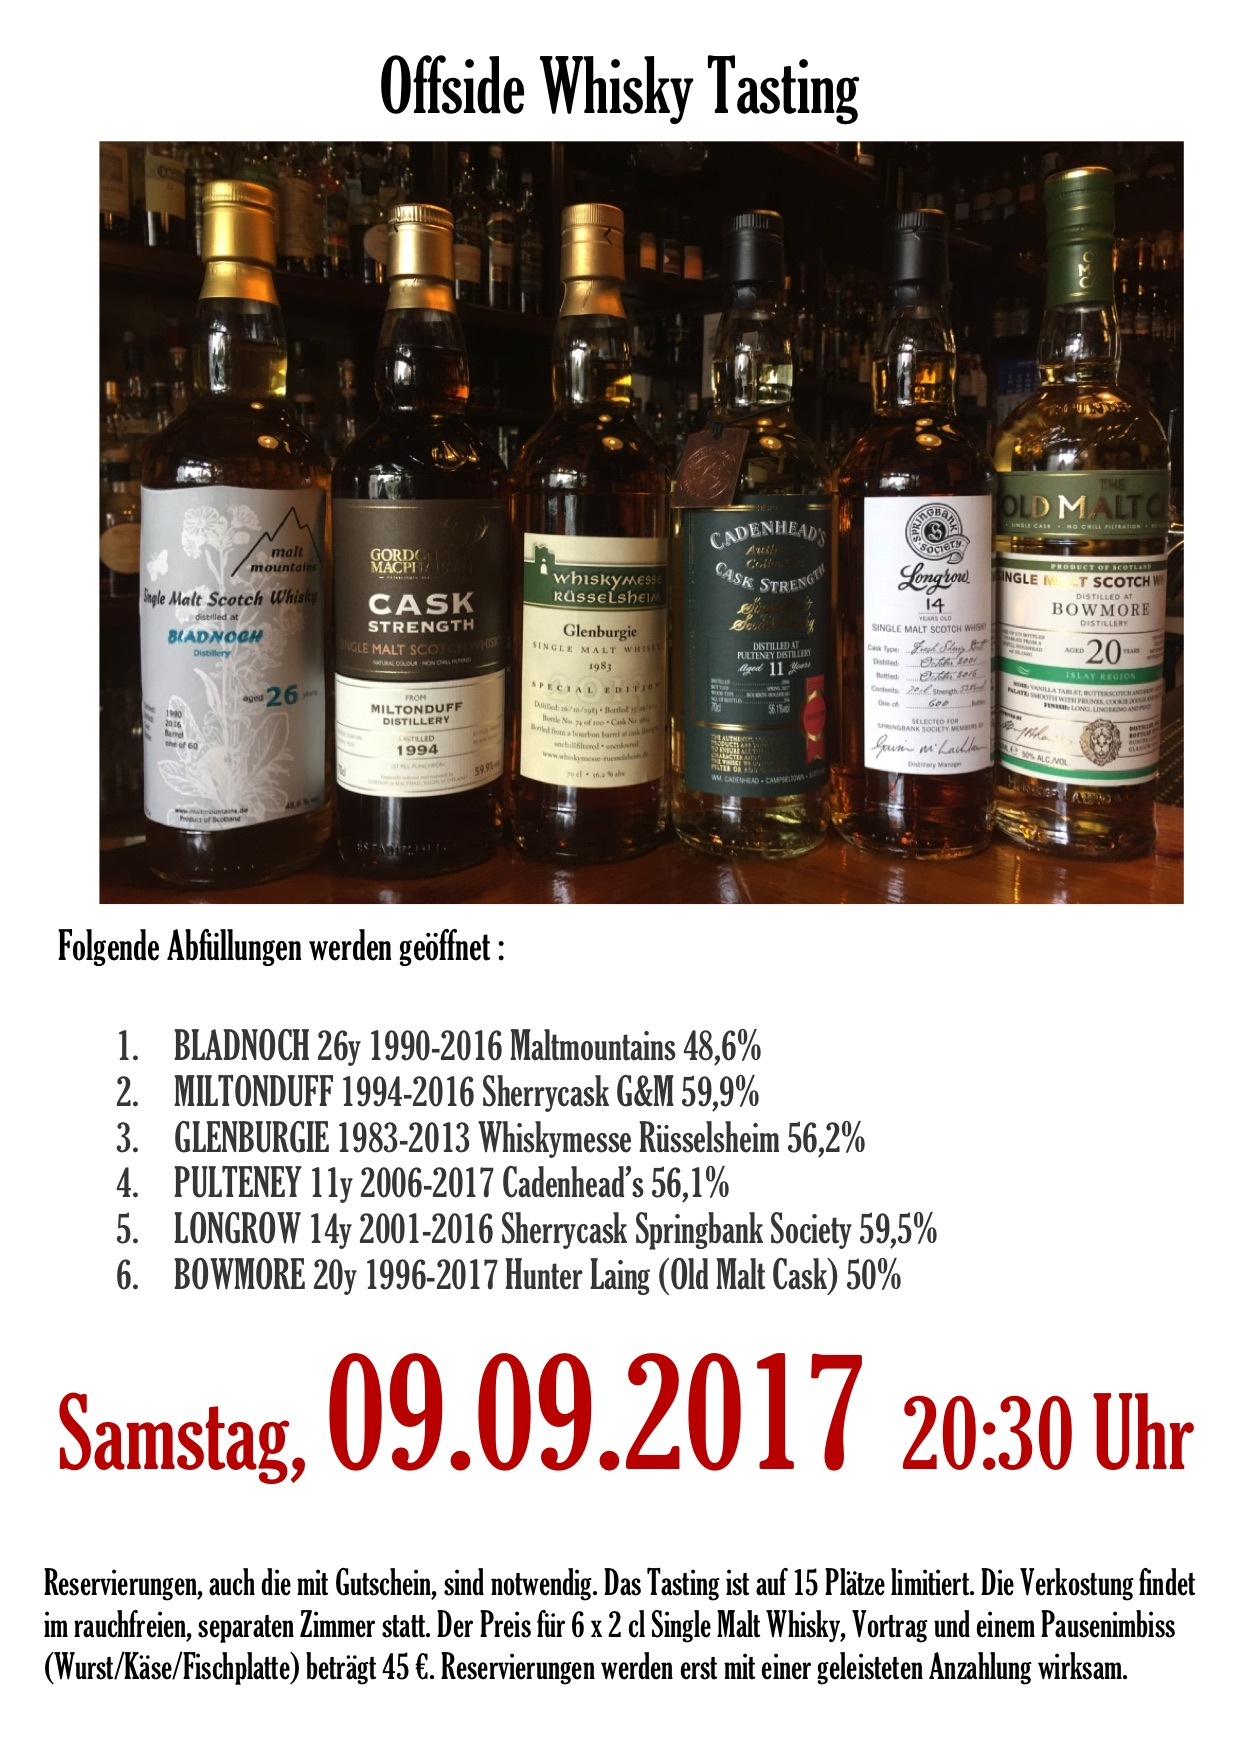 Offside Whisky Tasting 09.09.2017